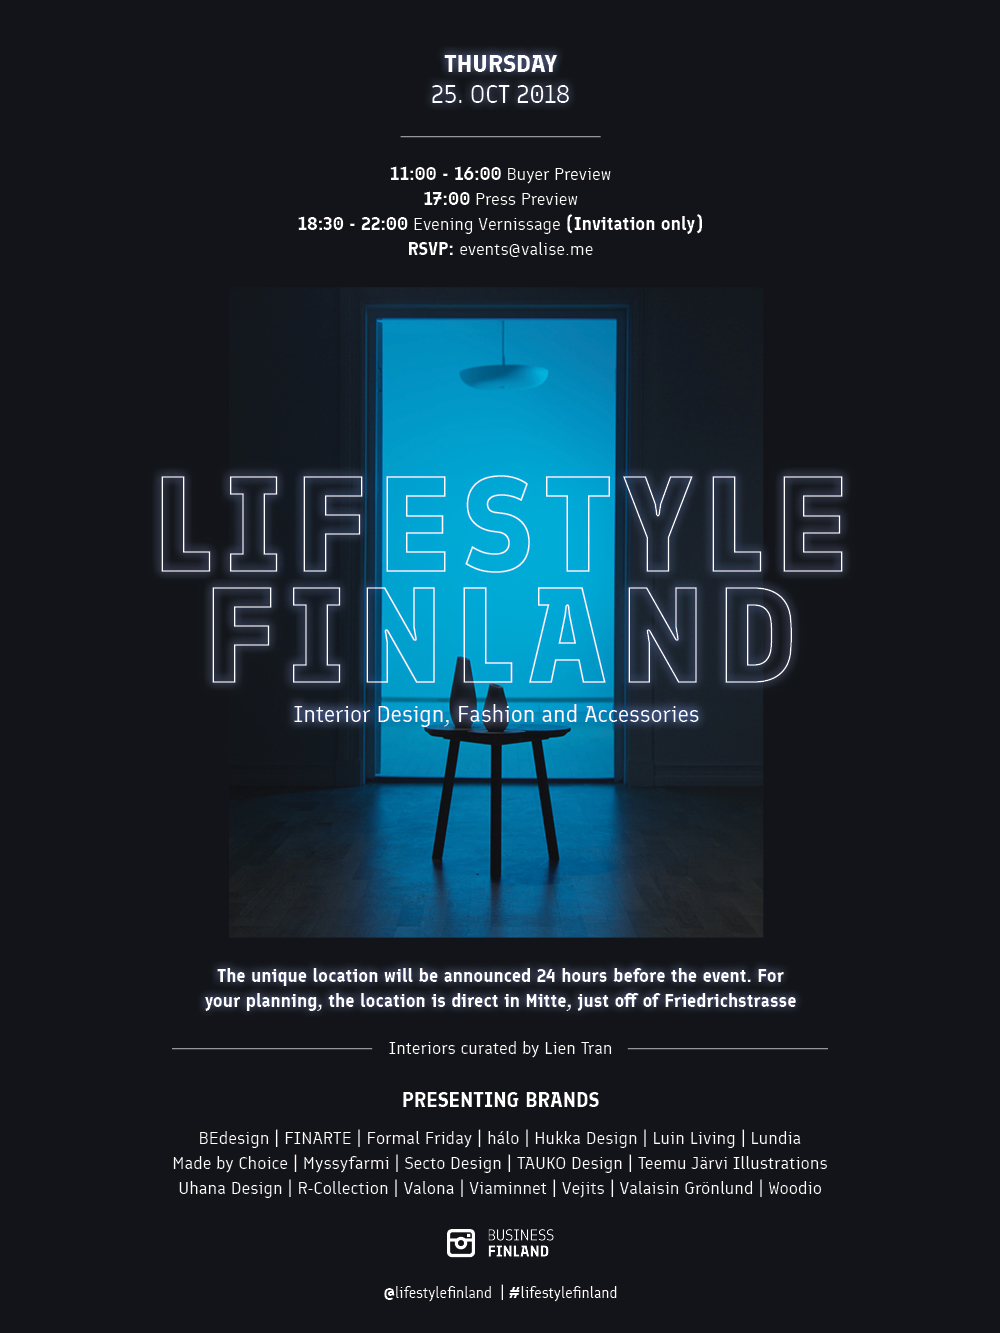 Lifestyle Finland Invite_Final (USE FOR THE INVITES).jpg